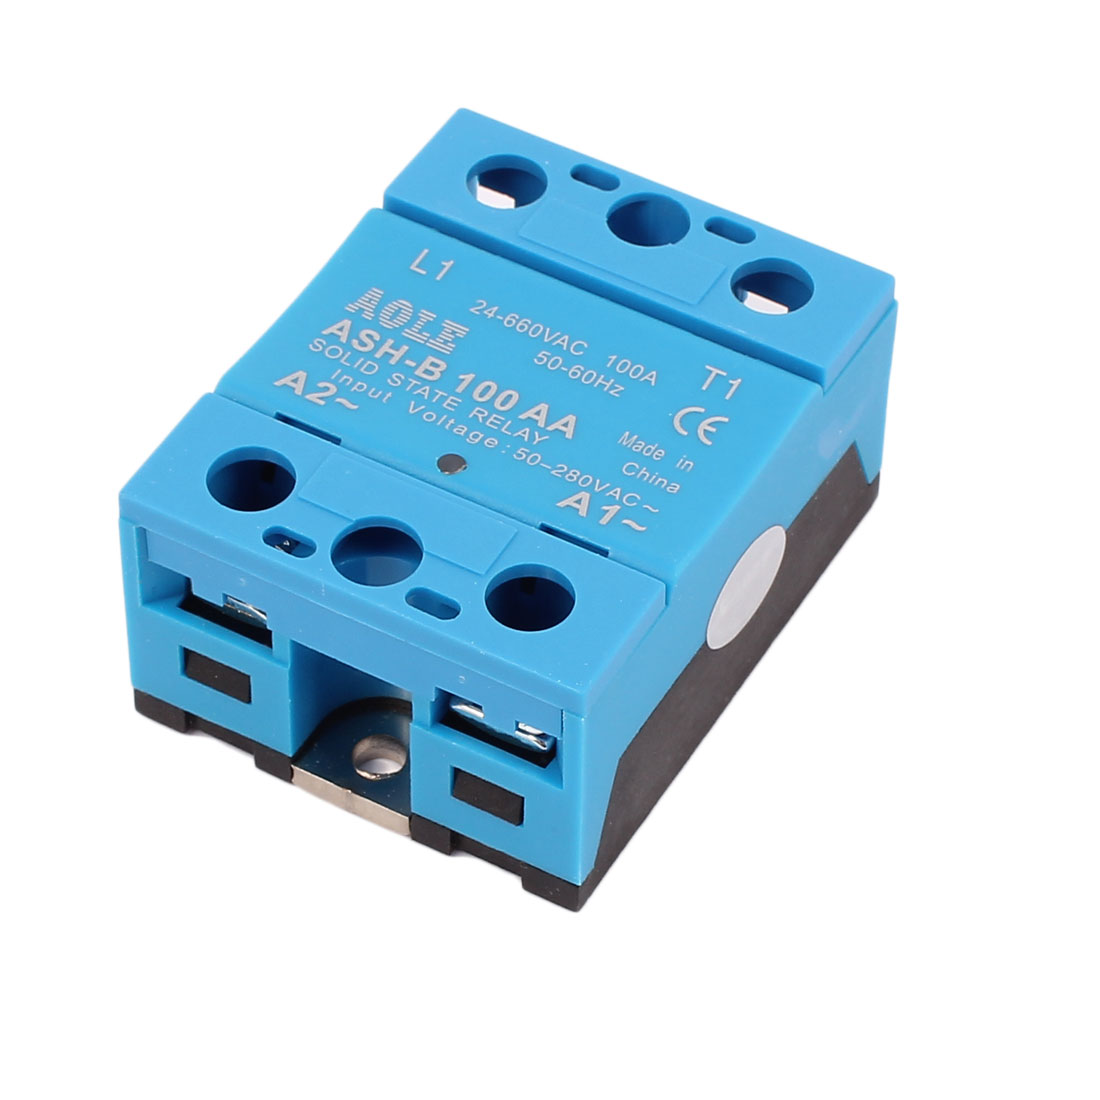 50 280vac To 660vac 100a Single Phase Solid State Relay Ac Basic Of Qty